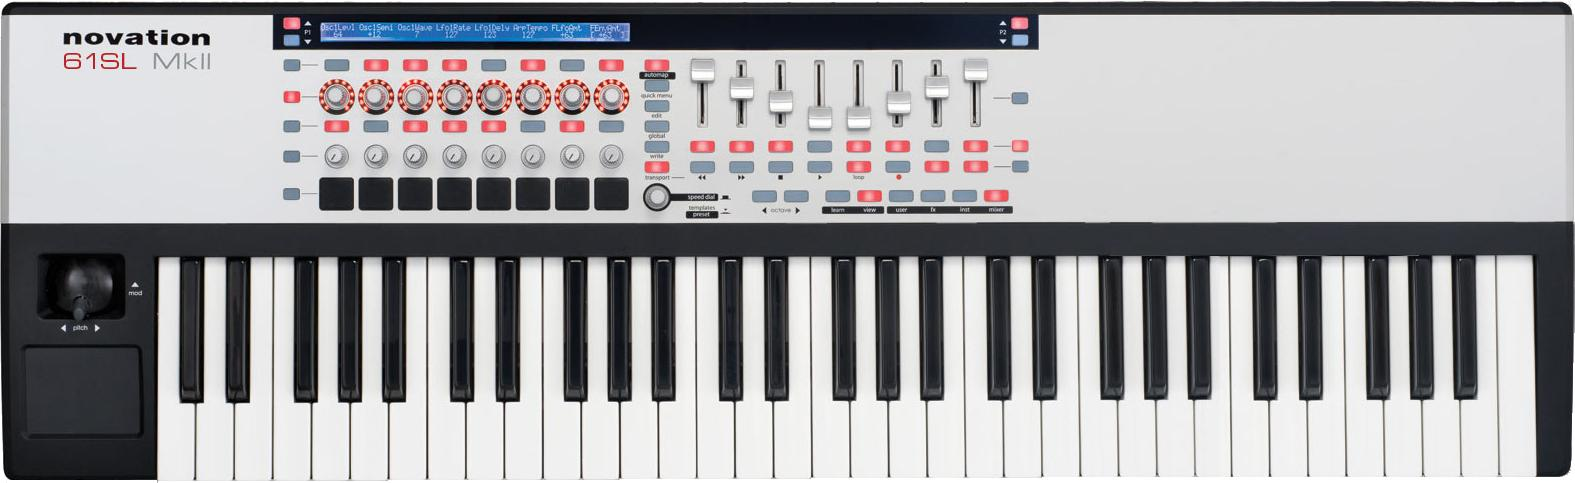 Novation SL MkII 61